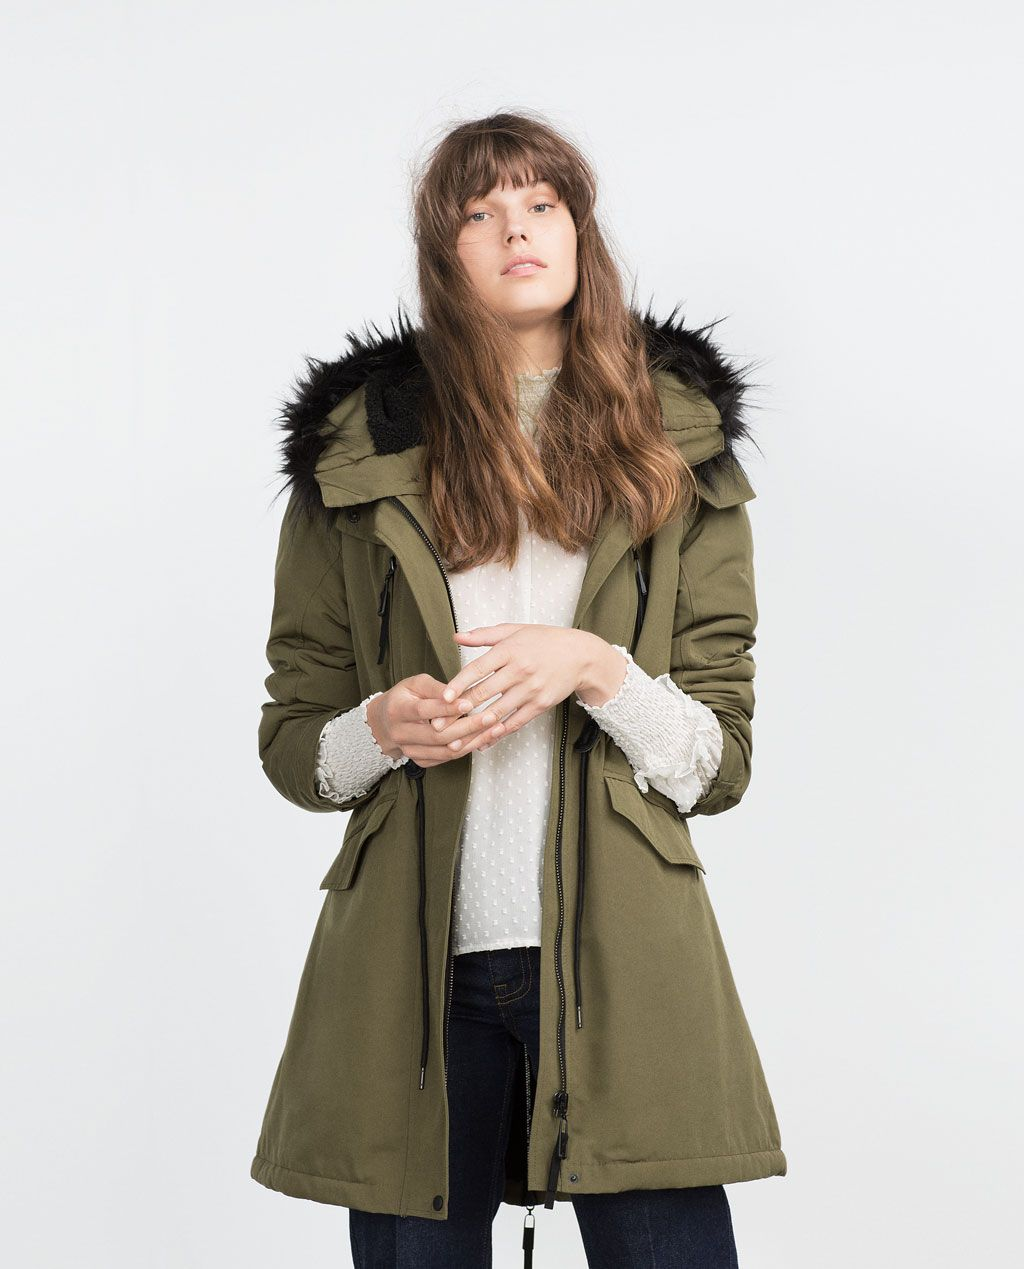 fleece lined parka parkas outerwear woman zara united states fall outfits pinterest. Black Bedroom Furniture Sets. Home Design Ideas